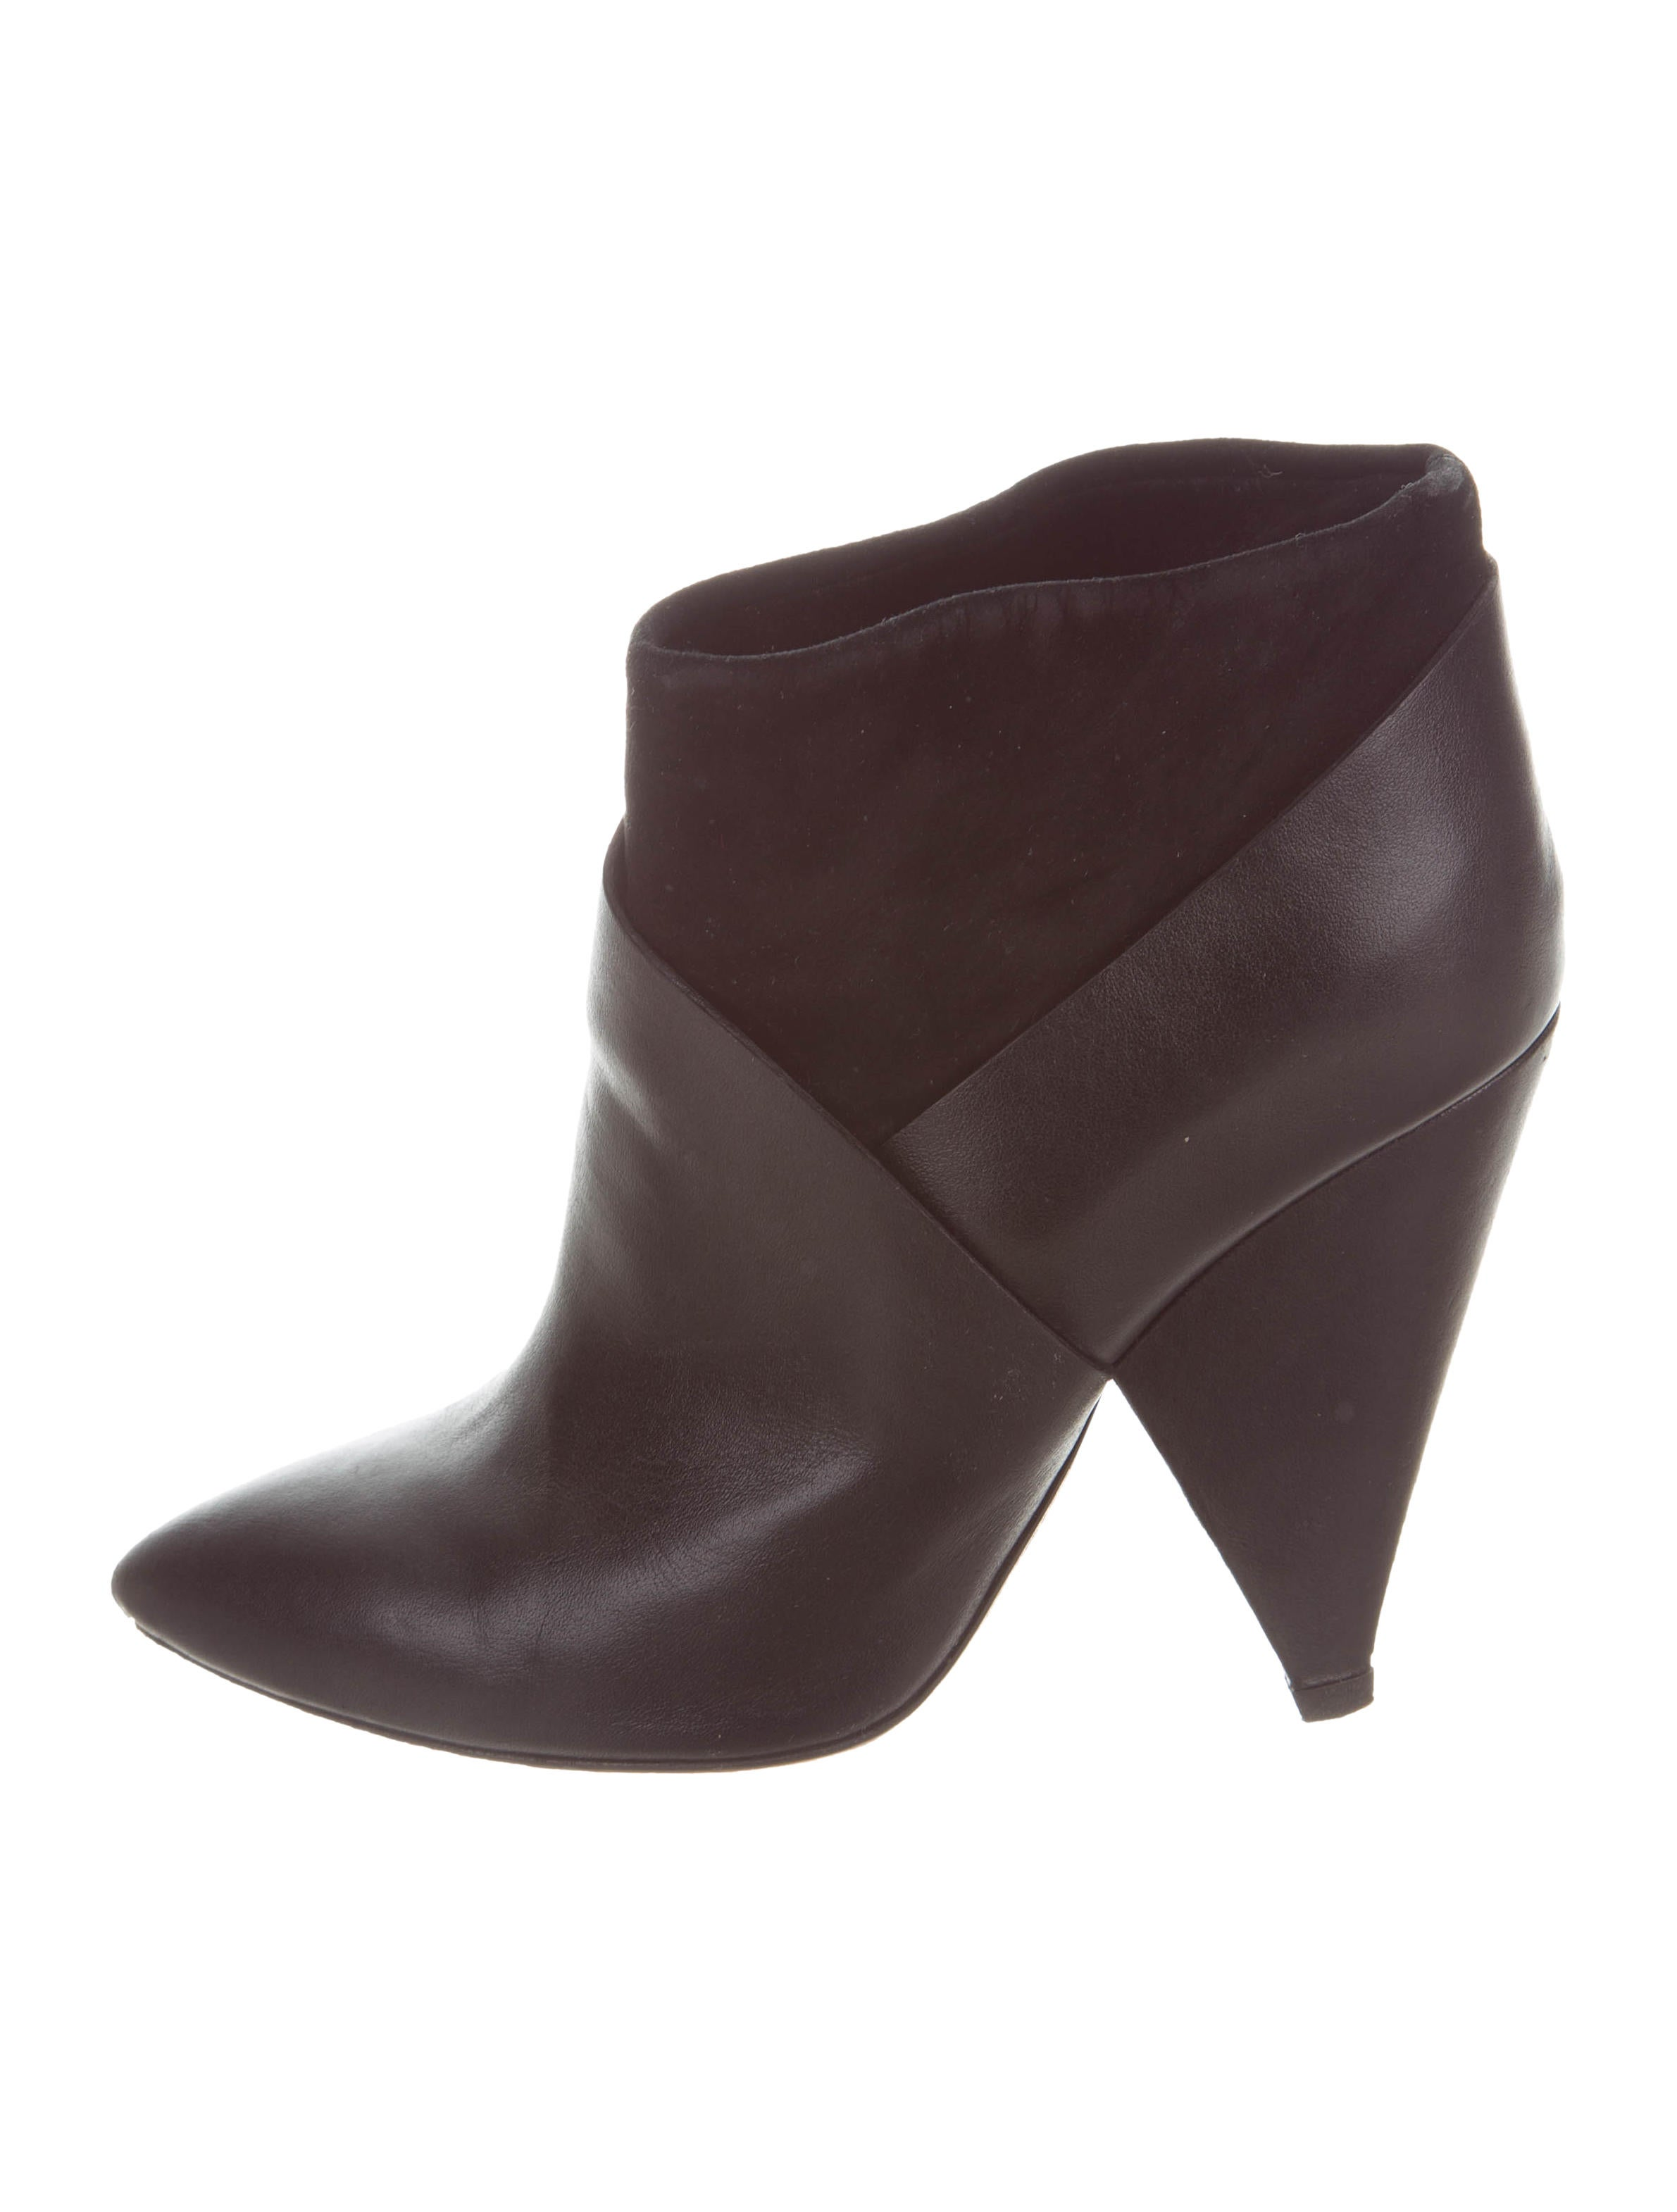 cheap sale geniue stockist Iro Leather Pointed-Toe Boots cheap sale under $60 x48BEsuX